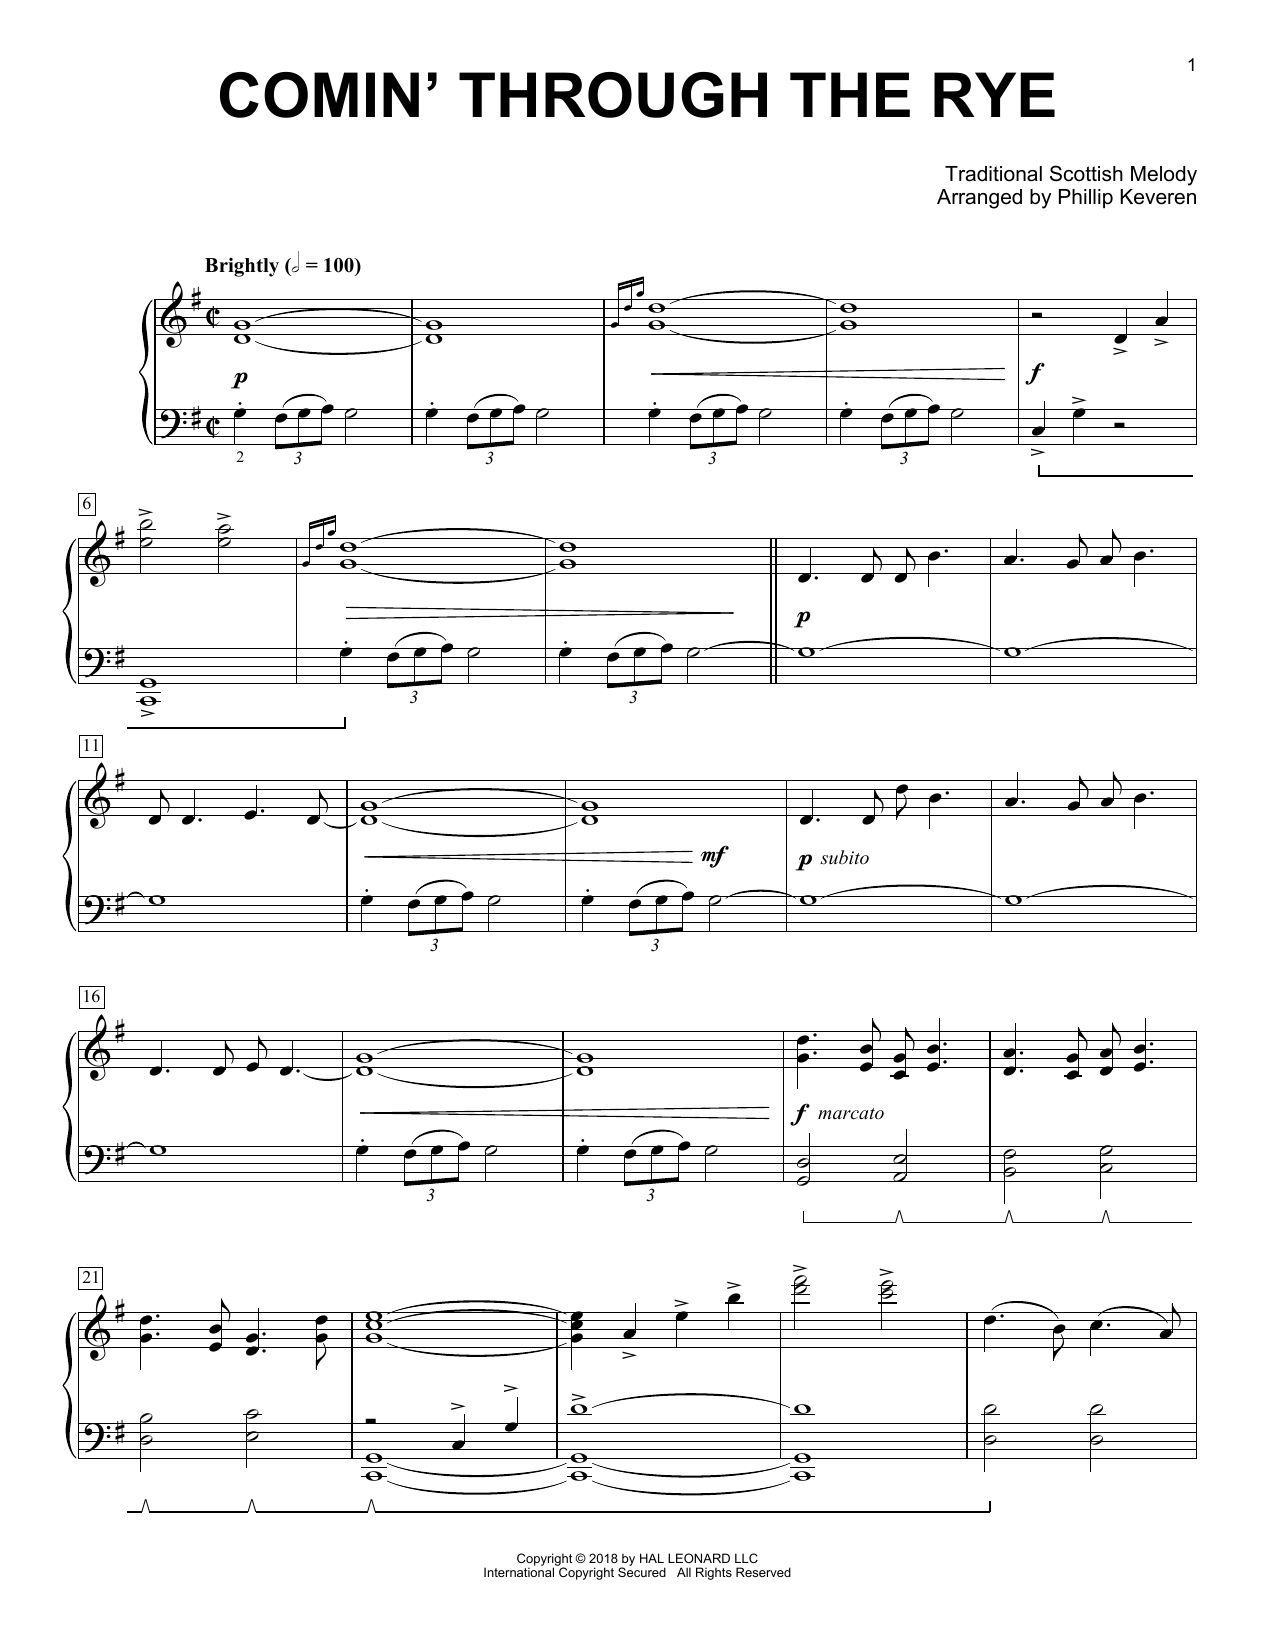 Traditional Scottish Melody Comin' Through The Rye [Classical version] (arr. Phillip Keveren) sheet music notes and chords